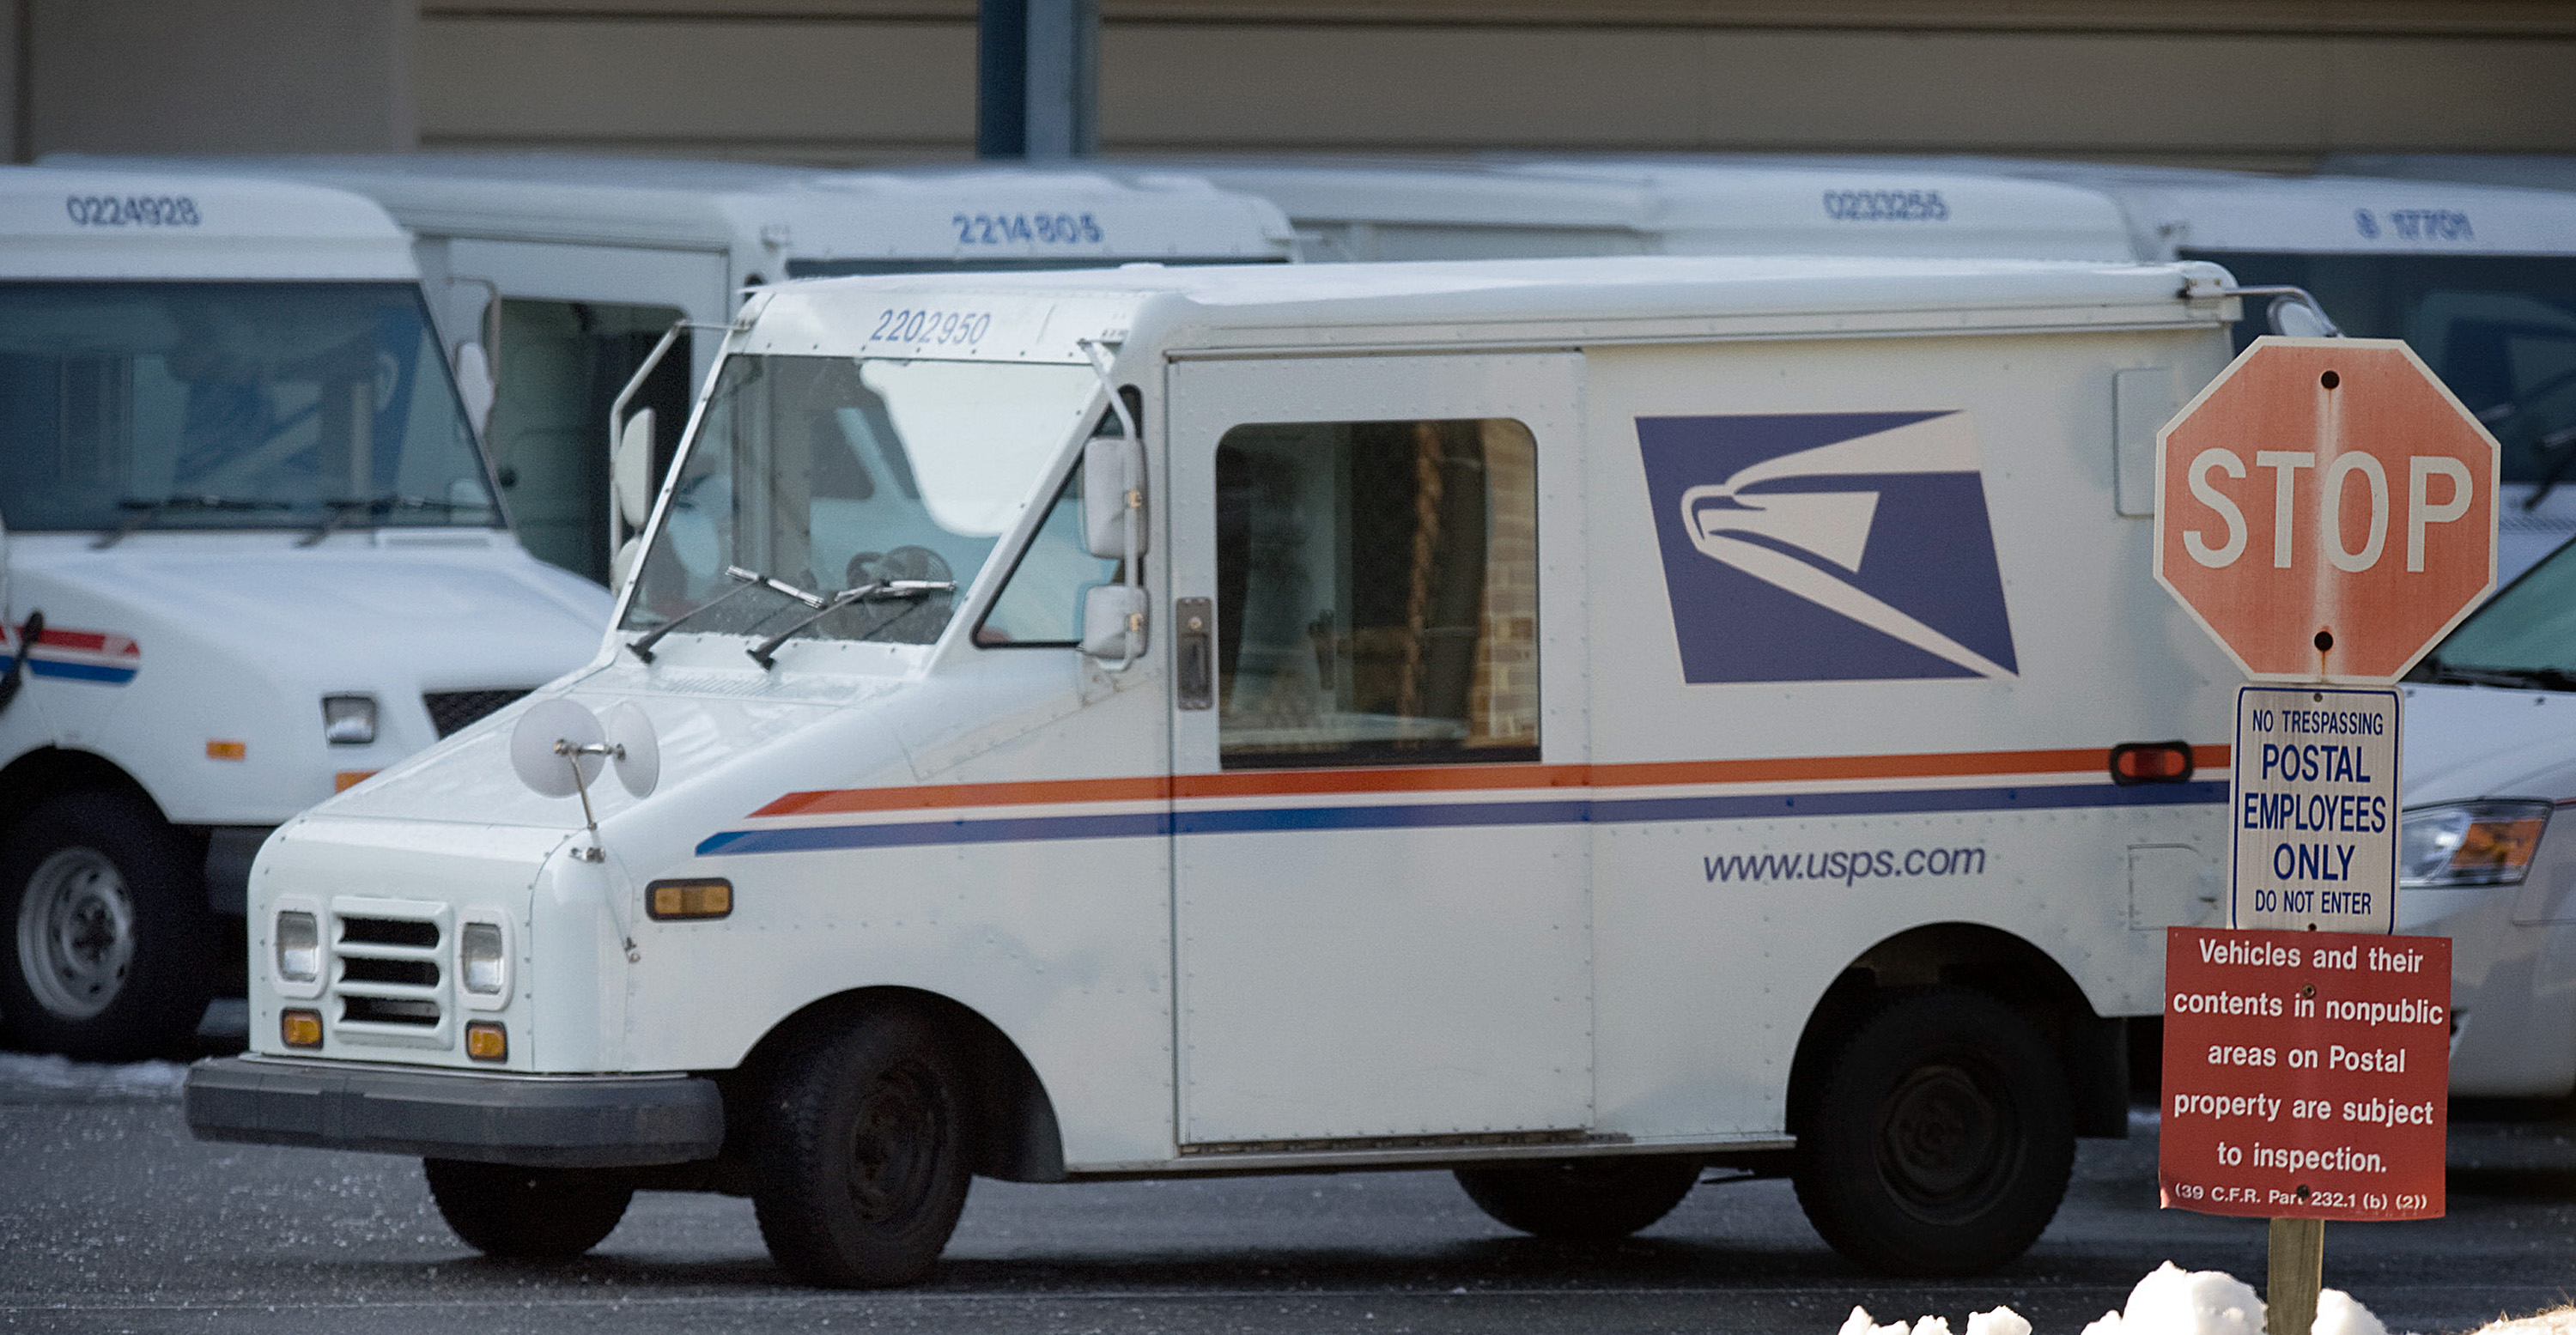 resume Usps Resume Mail Delivery usps resumes postal service to cuba